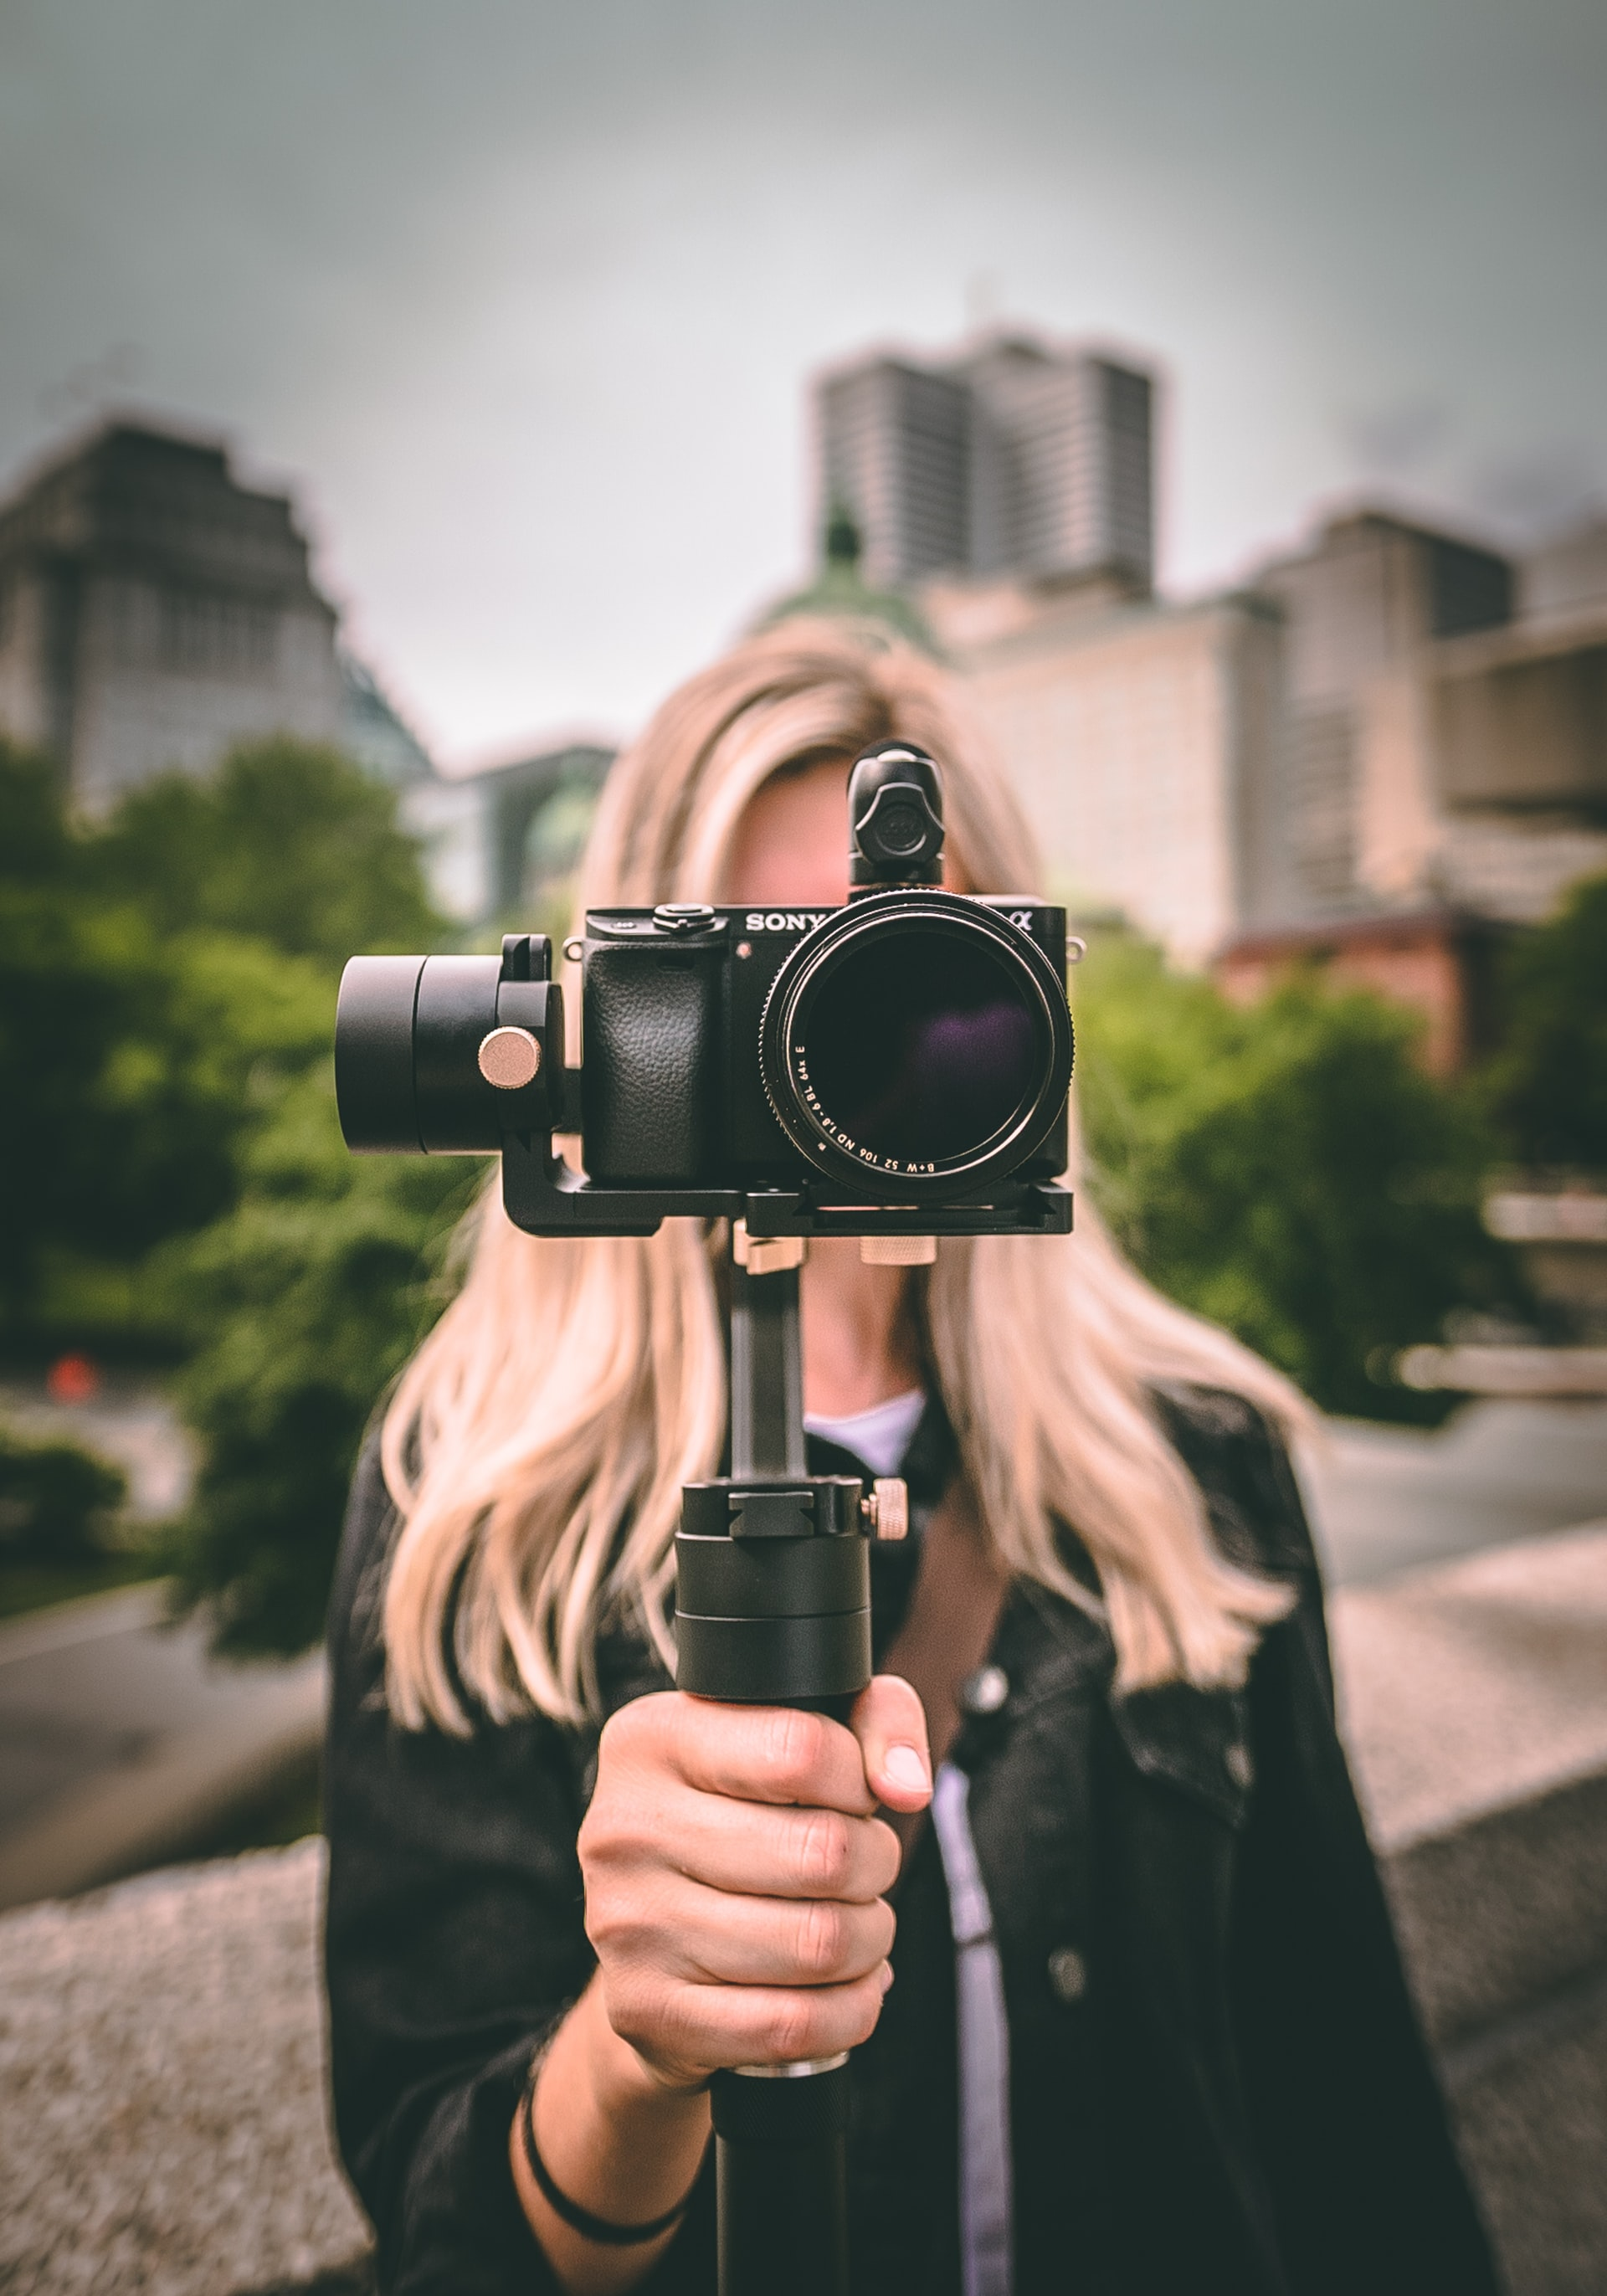 Top Cameras for Video